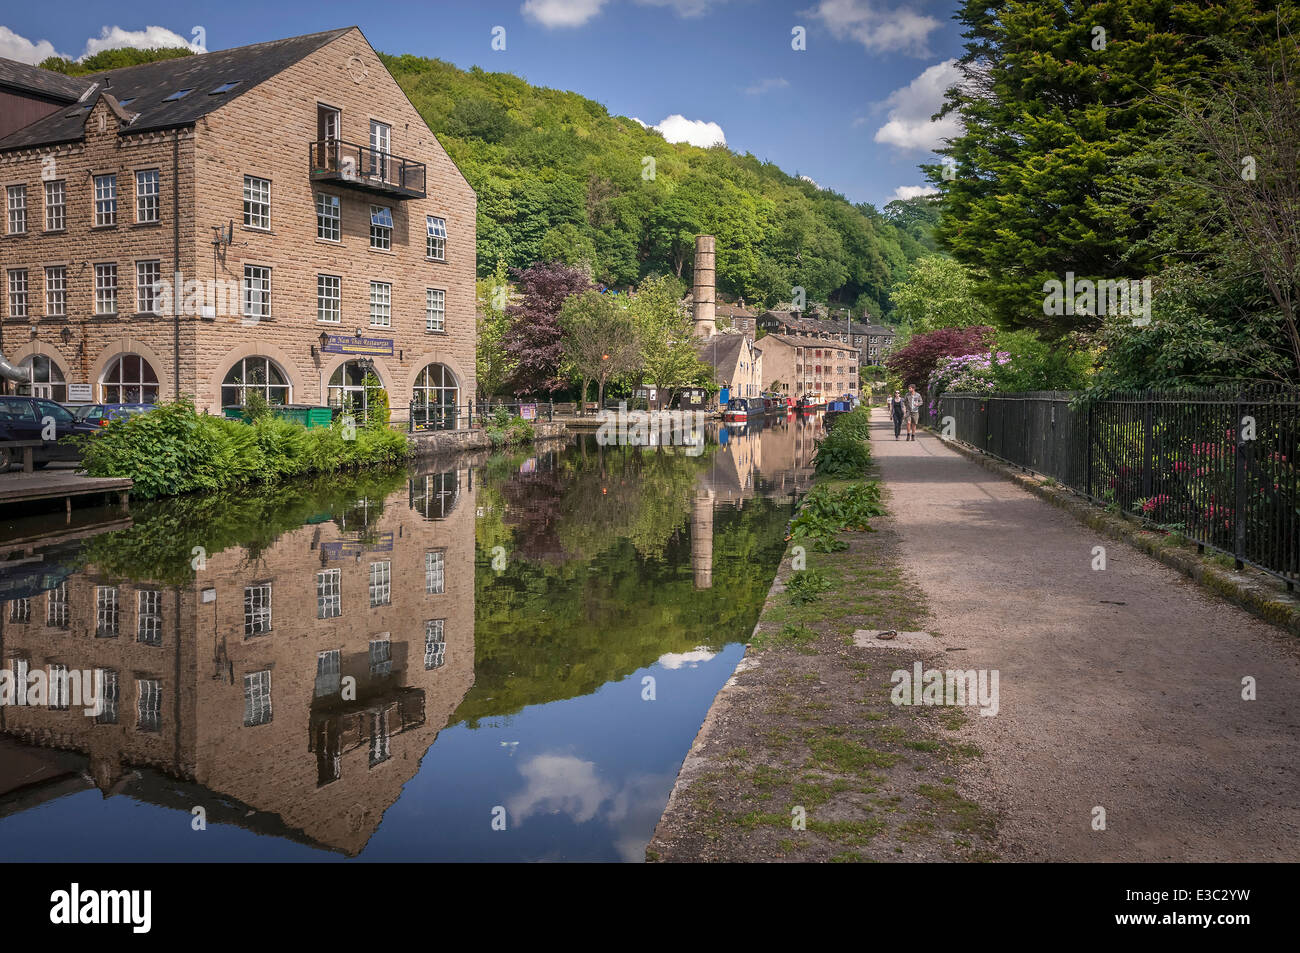 Hebden Bridge Calderdale. West Yorkshire. North West England. The Rochdale canal. - Stock Image